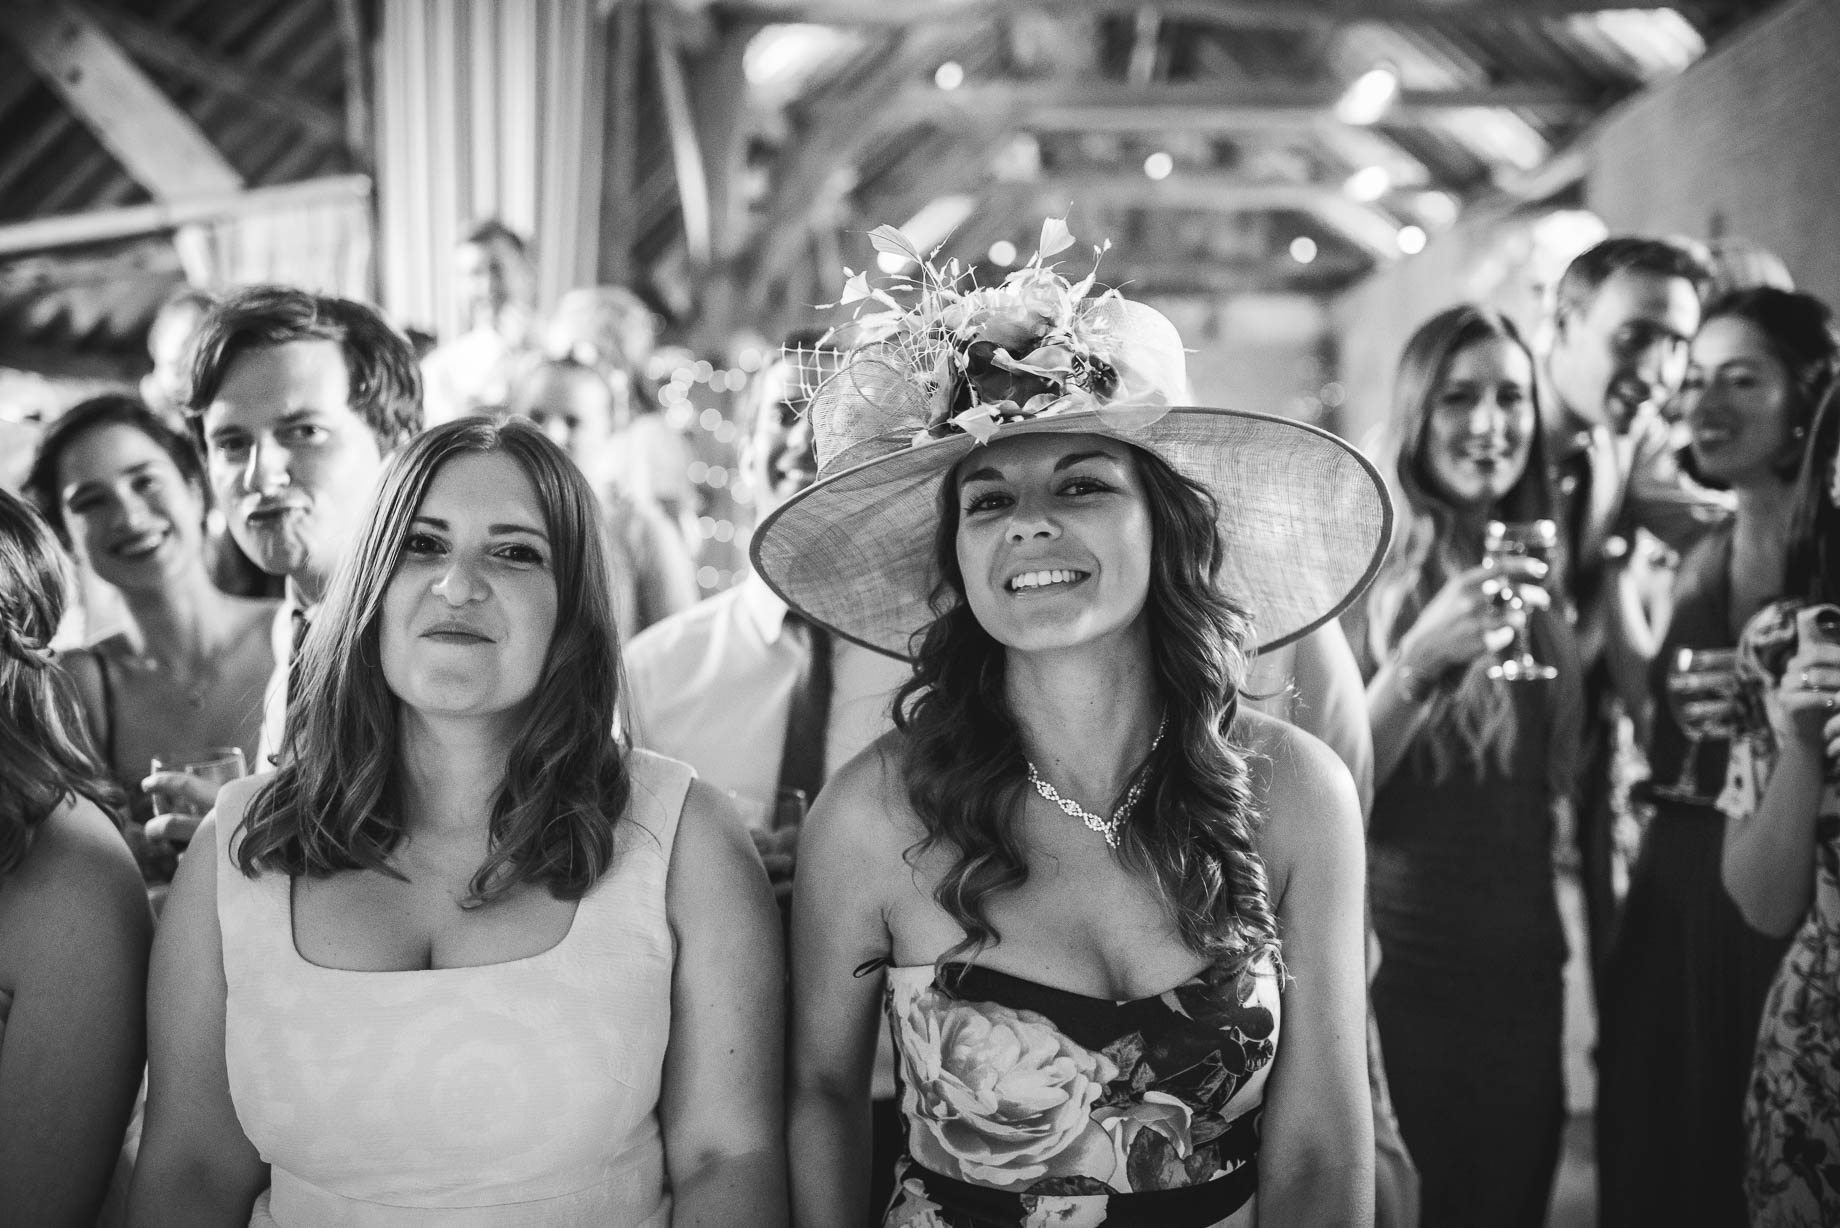 Bury Court Barn wedding photography by Guy Collier - Jo and Jamie (156 of 160)